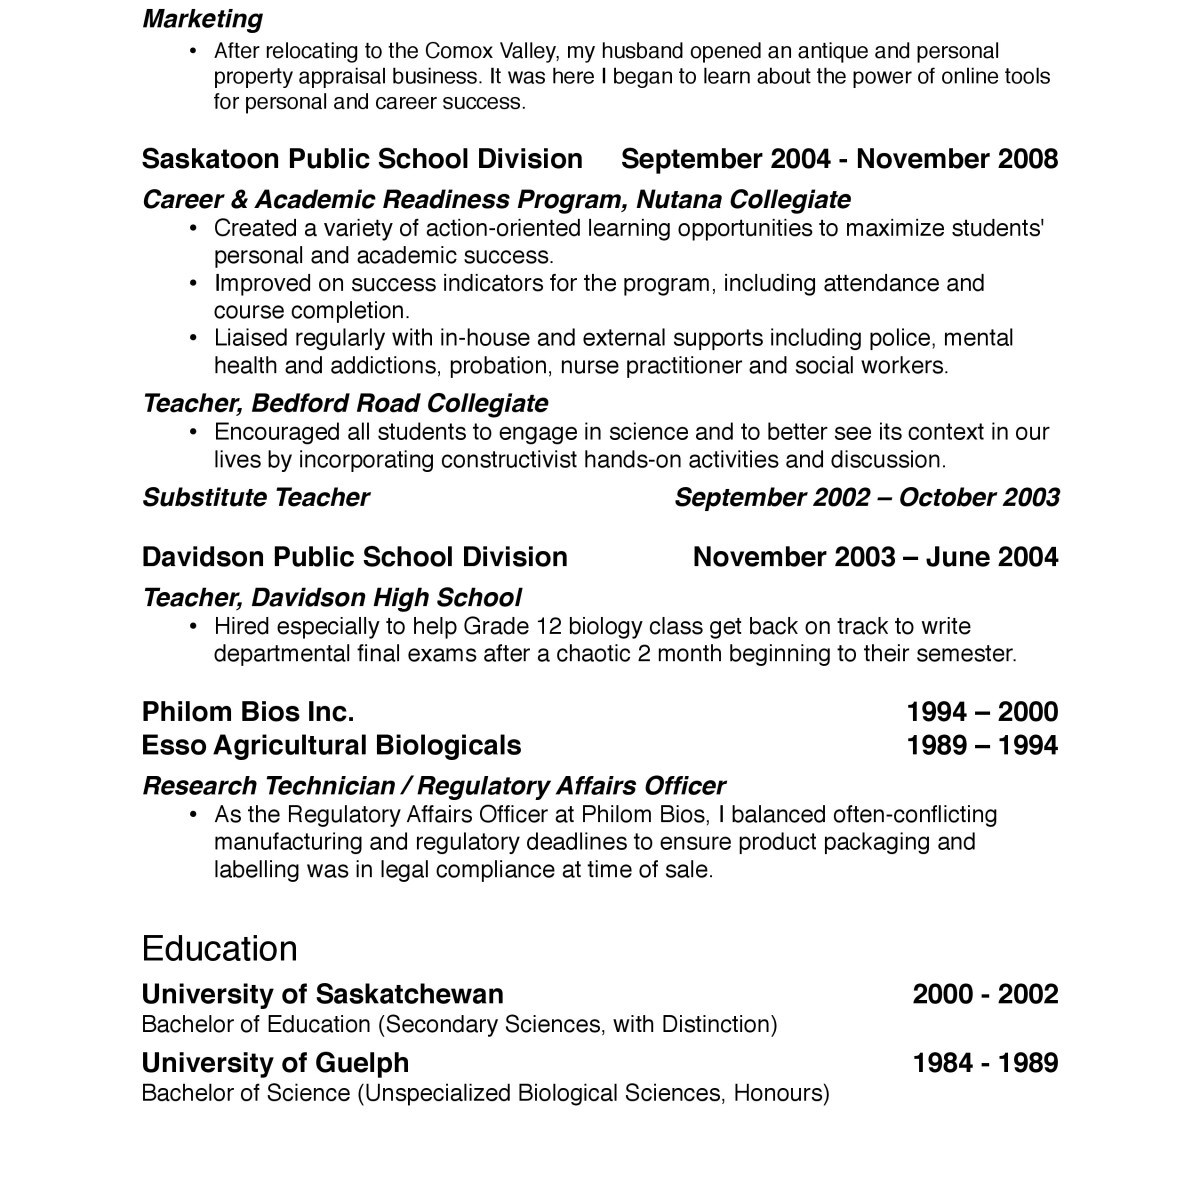 013 Essay Example Beth Campbell Duke Cv P X Cool Of Personality Wonderful Profile Full